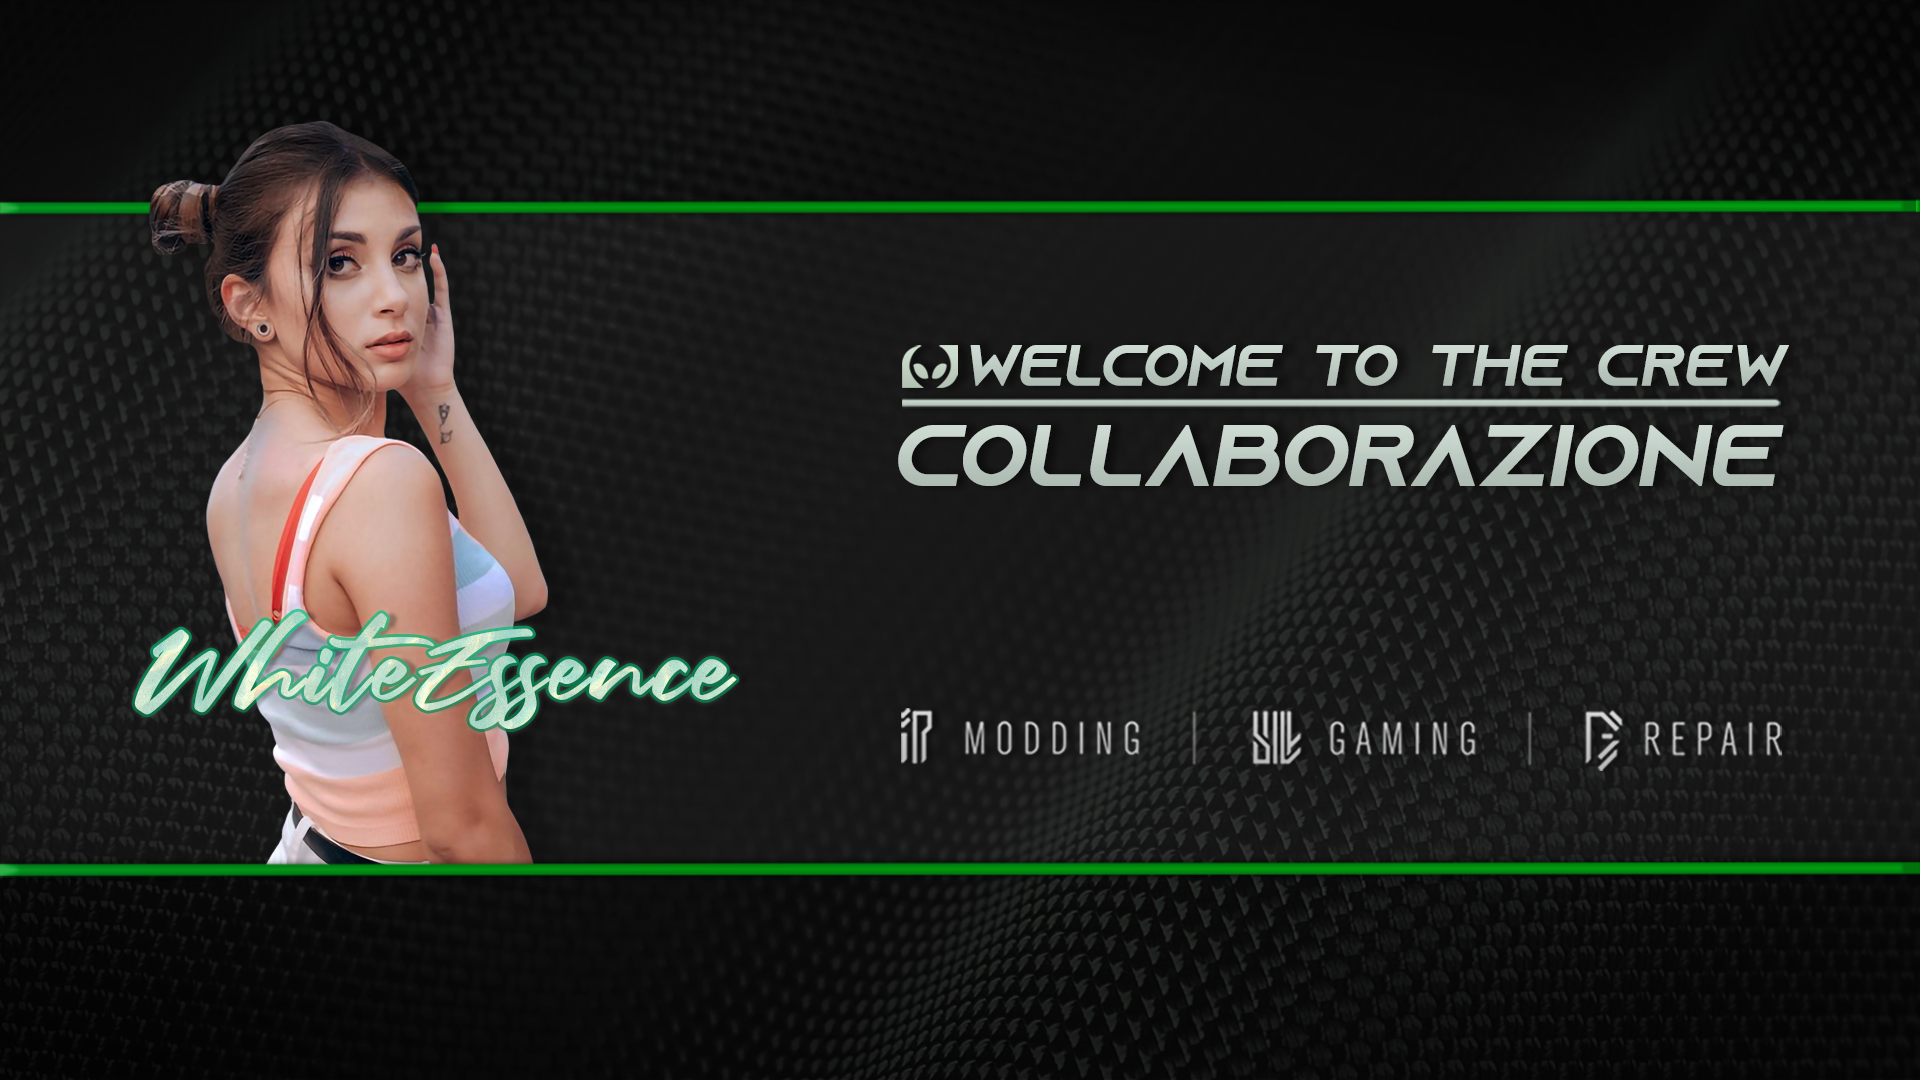 👽 Welcome to the Crew – Whitessence 👽